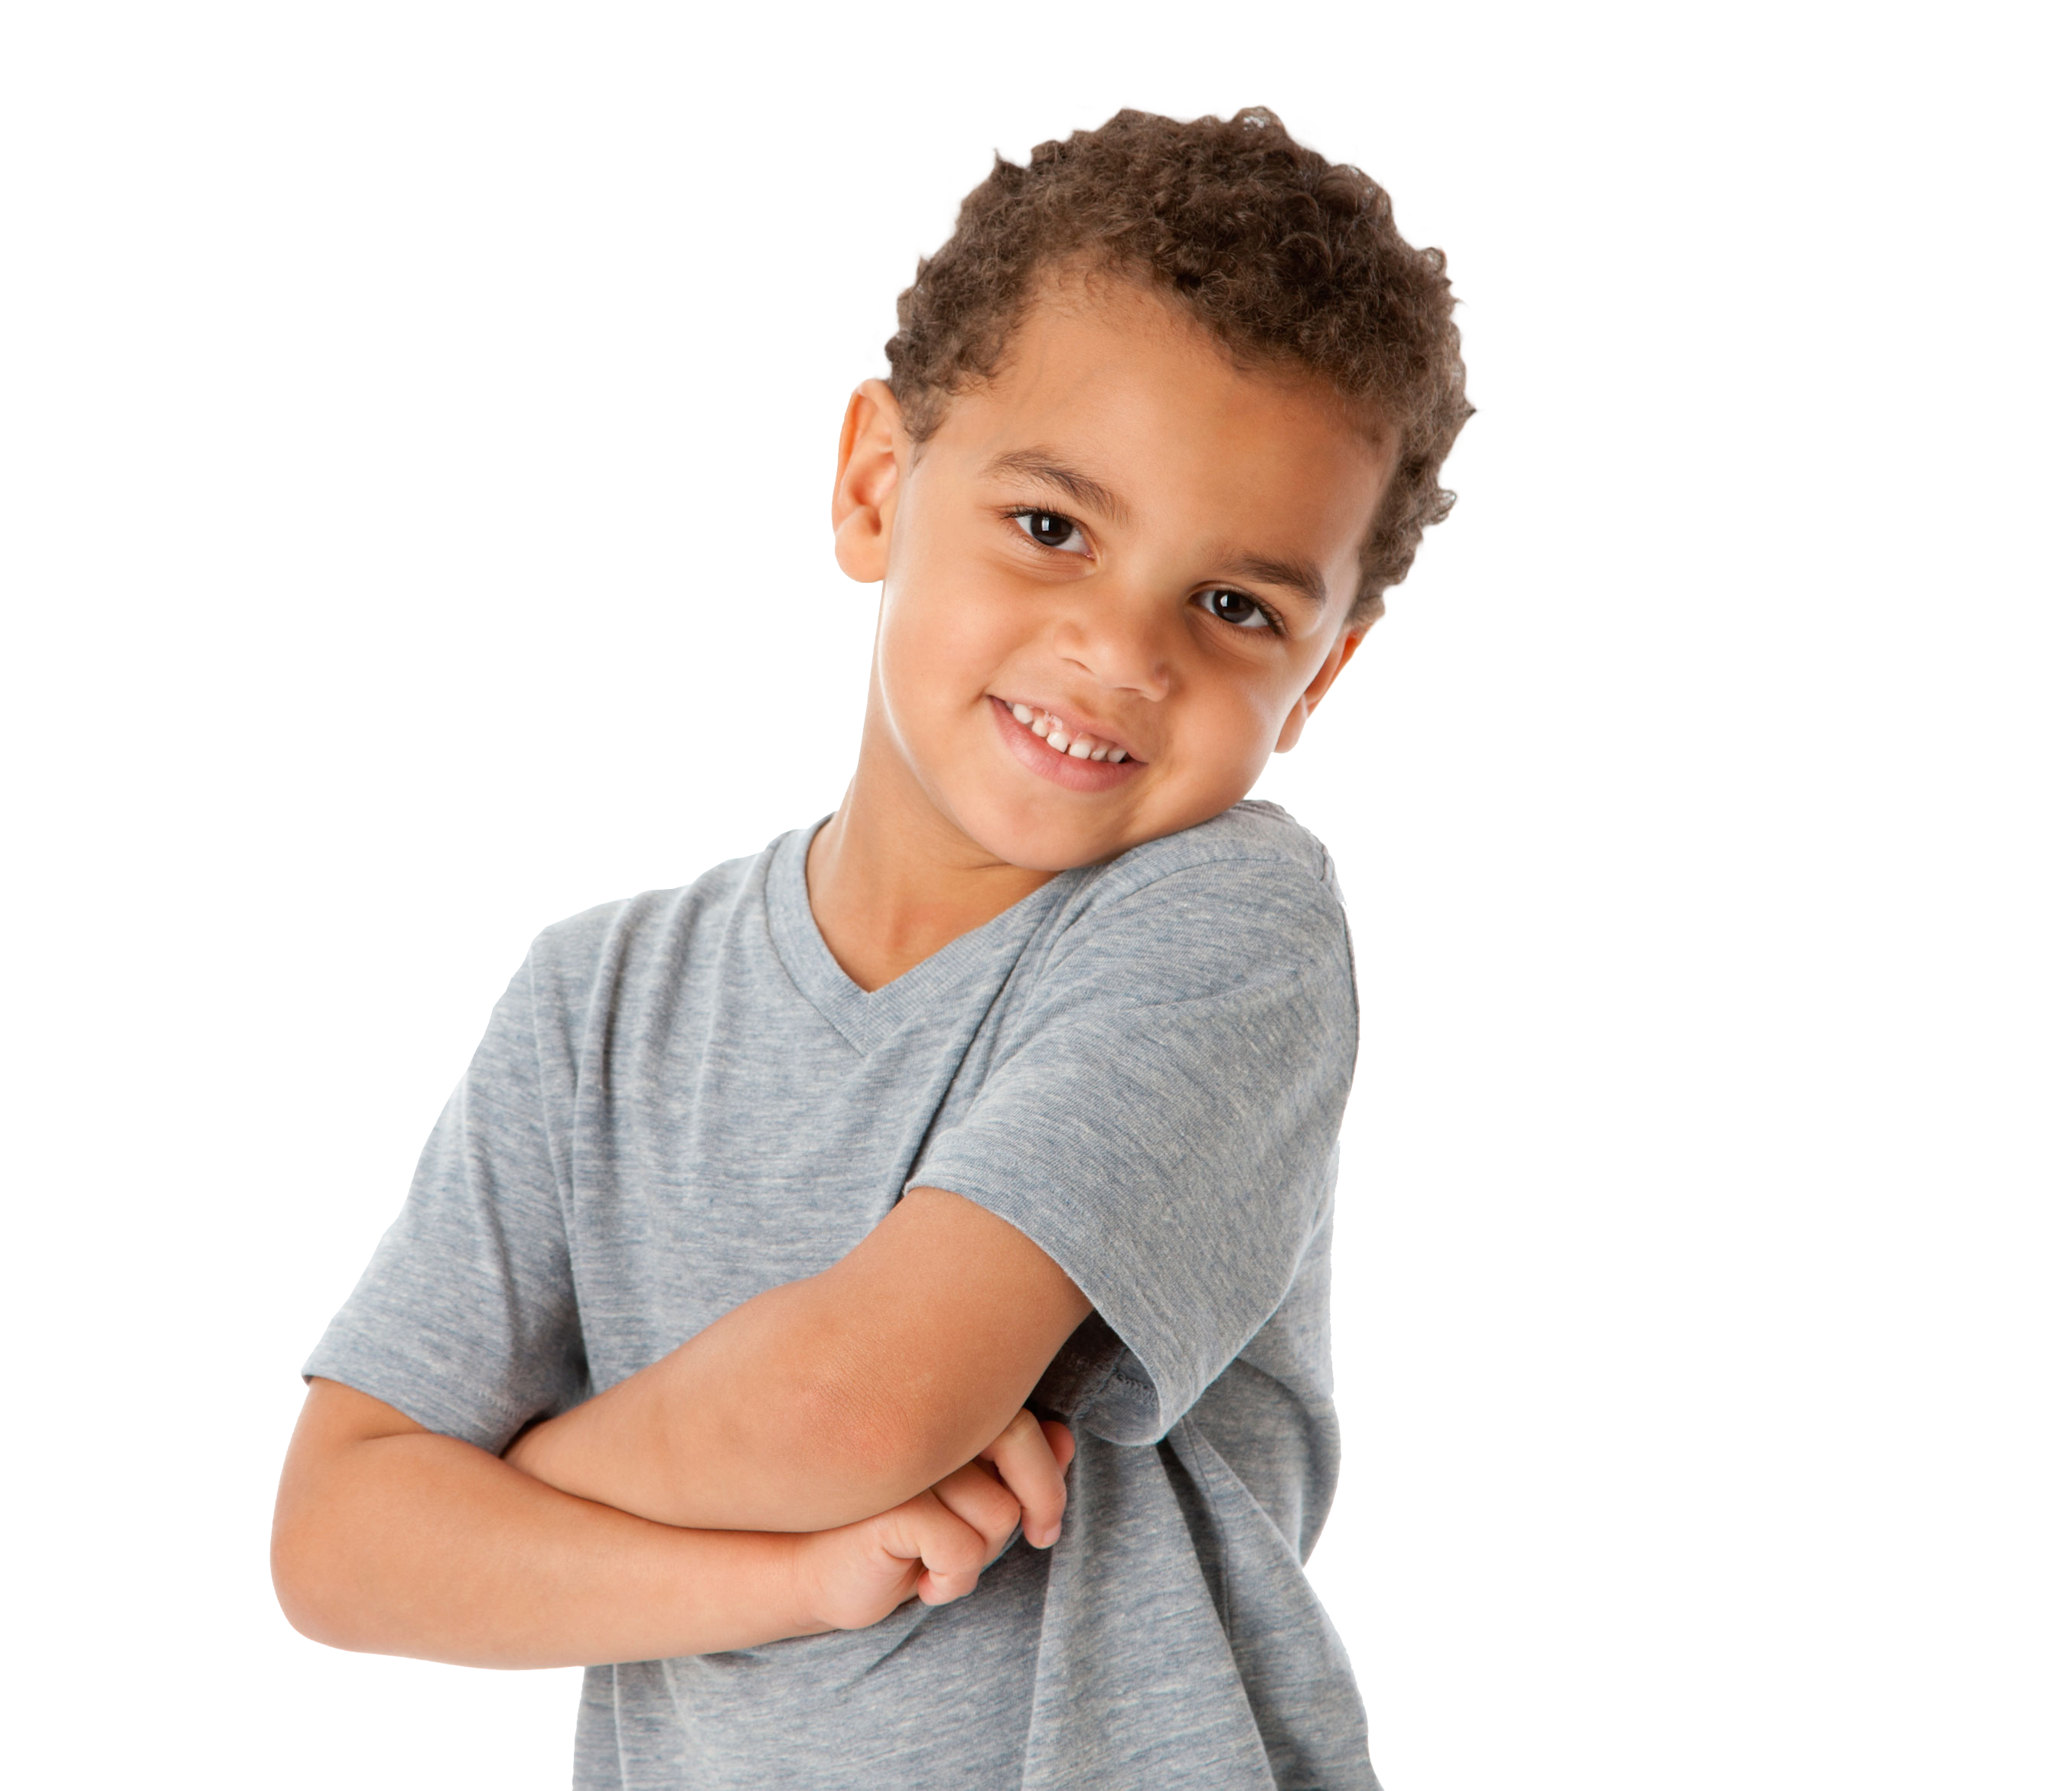 PlusPng pluspng.com Child PNG PlusPng pluspng.com - Kids Smiling PNG HD . - PNG HD Baby